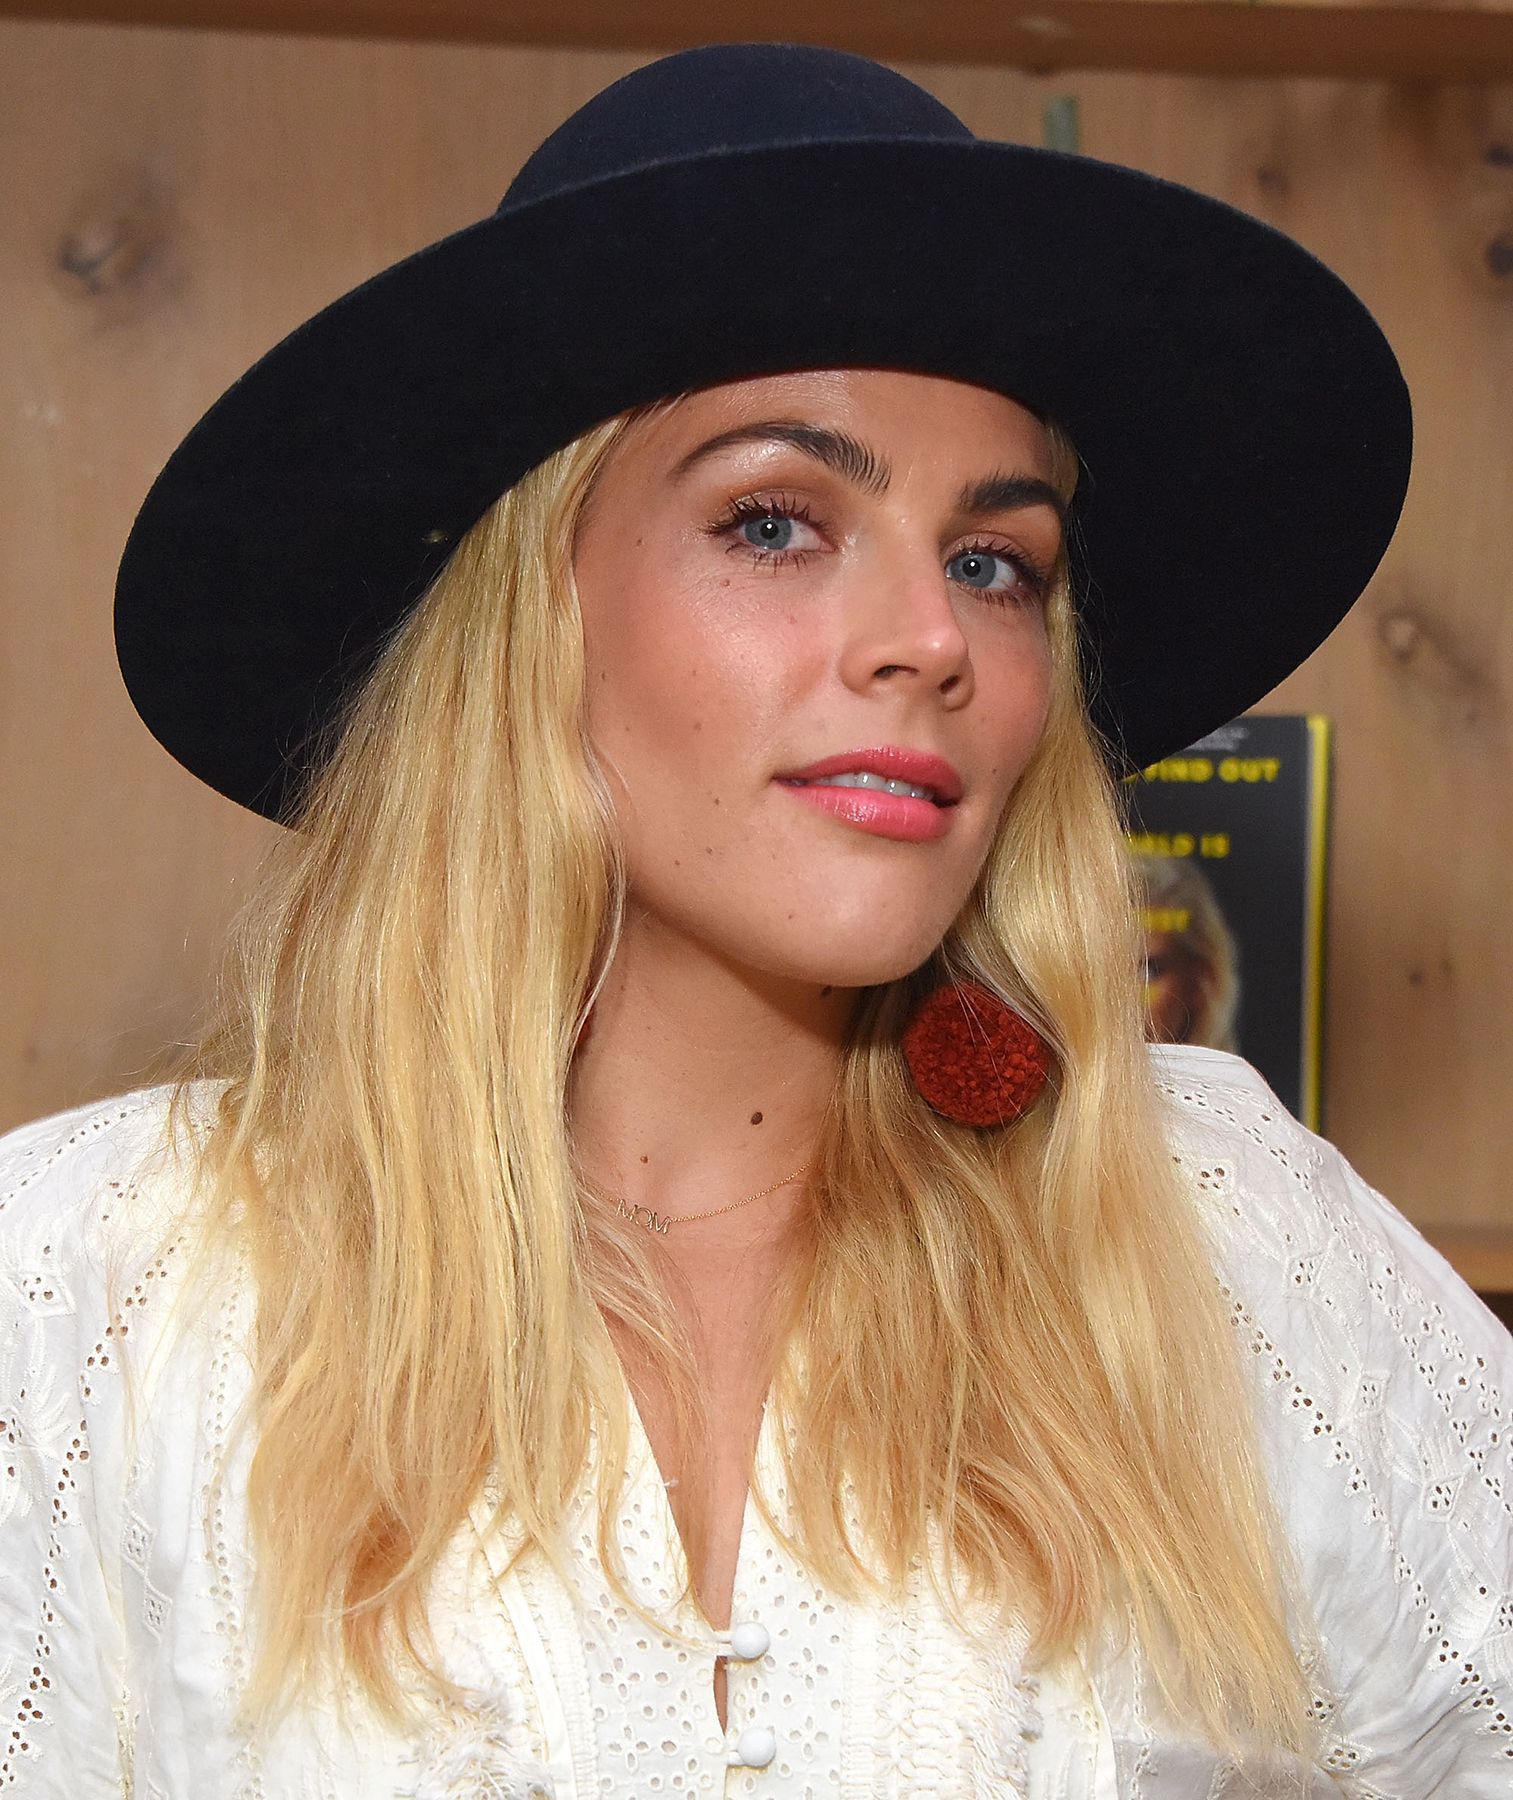 Busy Philipps Just Shot Garlic Up Her Nose to Relieve Sinus Congestion—and It Looks So Painful